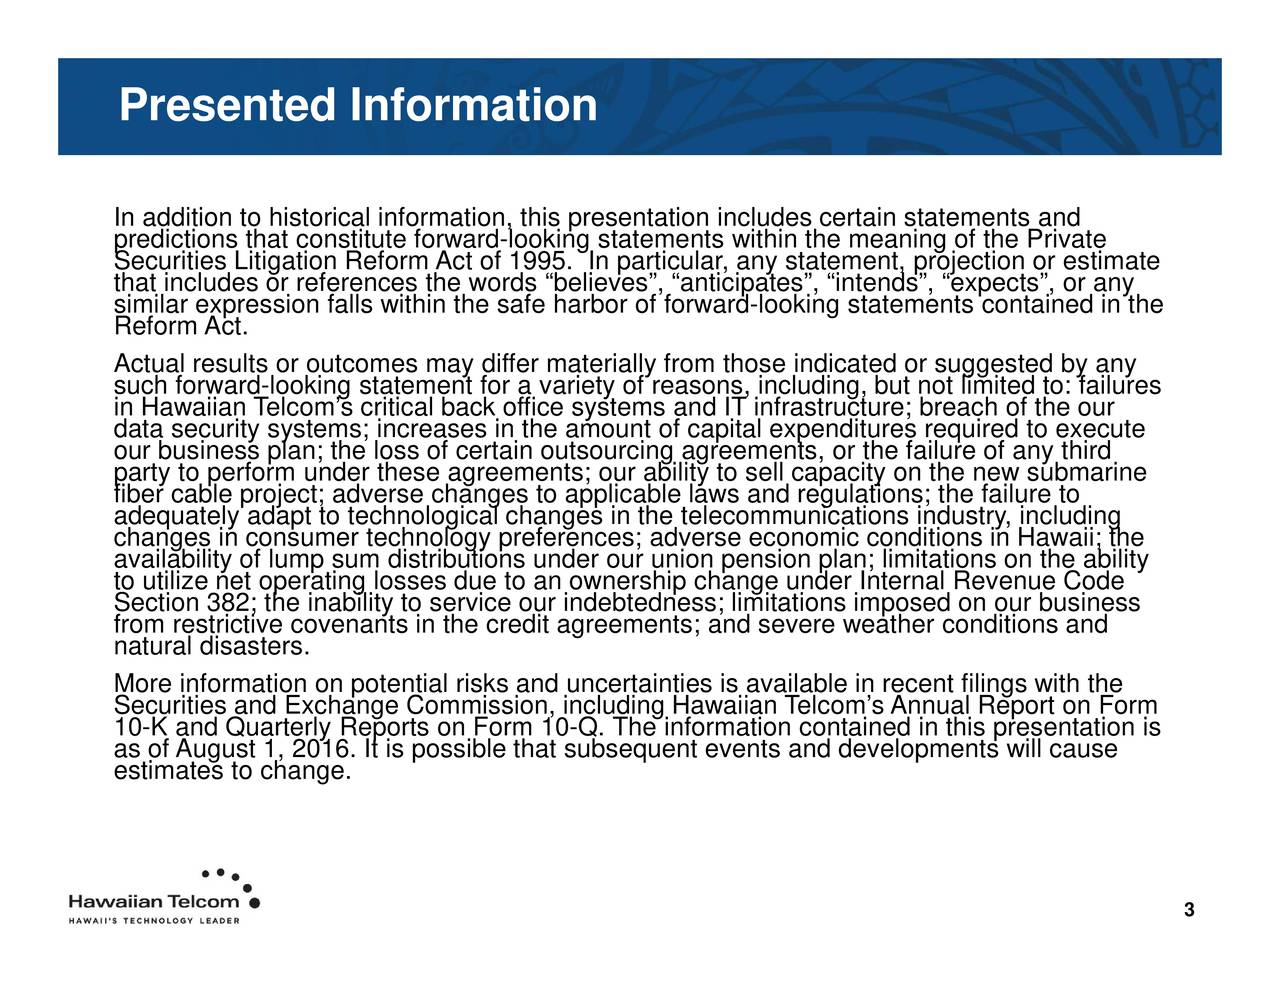 economic conditation contained in this presentation is d IT infrastructure; breach of the ourcluding nts anticipom those indicateidoprsugionstldn;liaitytions on the abilitys with the ation includes certain statements andntained in the PresentedInpreehctmieflLstareeteiniddlapkicdlrnjcdpgf1miiieoaacersEgnetaaeiolcrtlt;nes